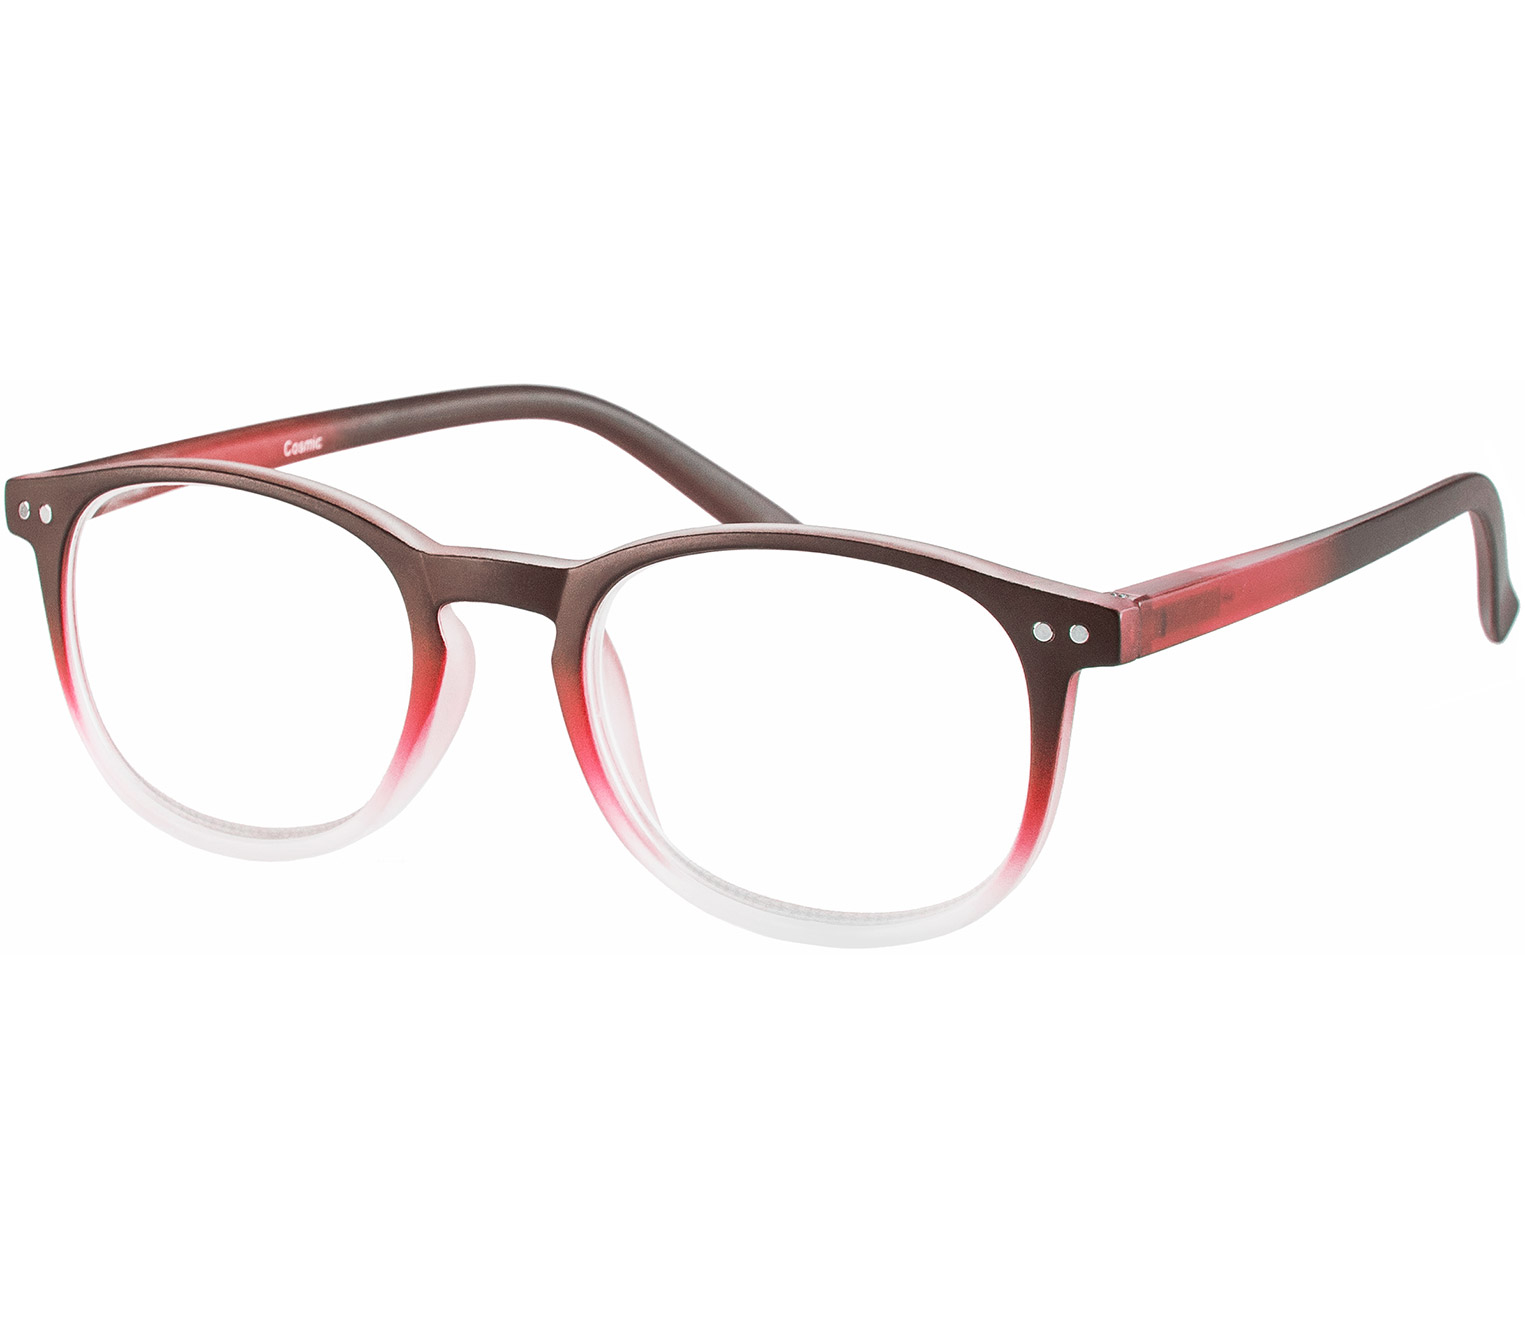 Main Image (Angle) - Cosmic (Red) Retro Reading Glasses